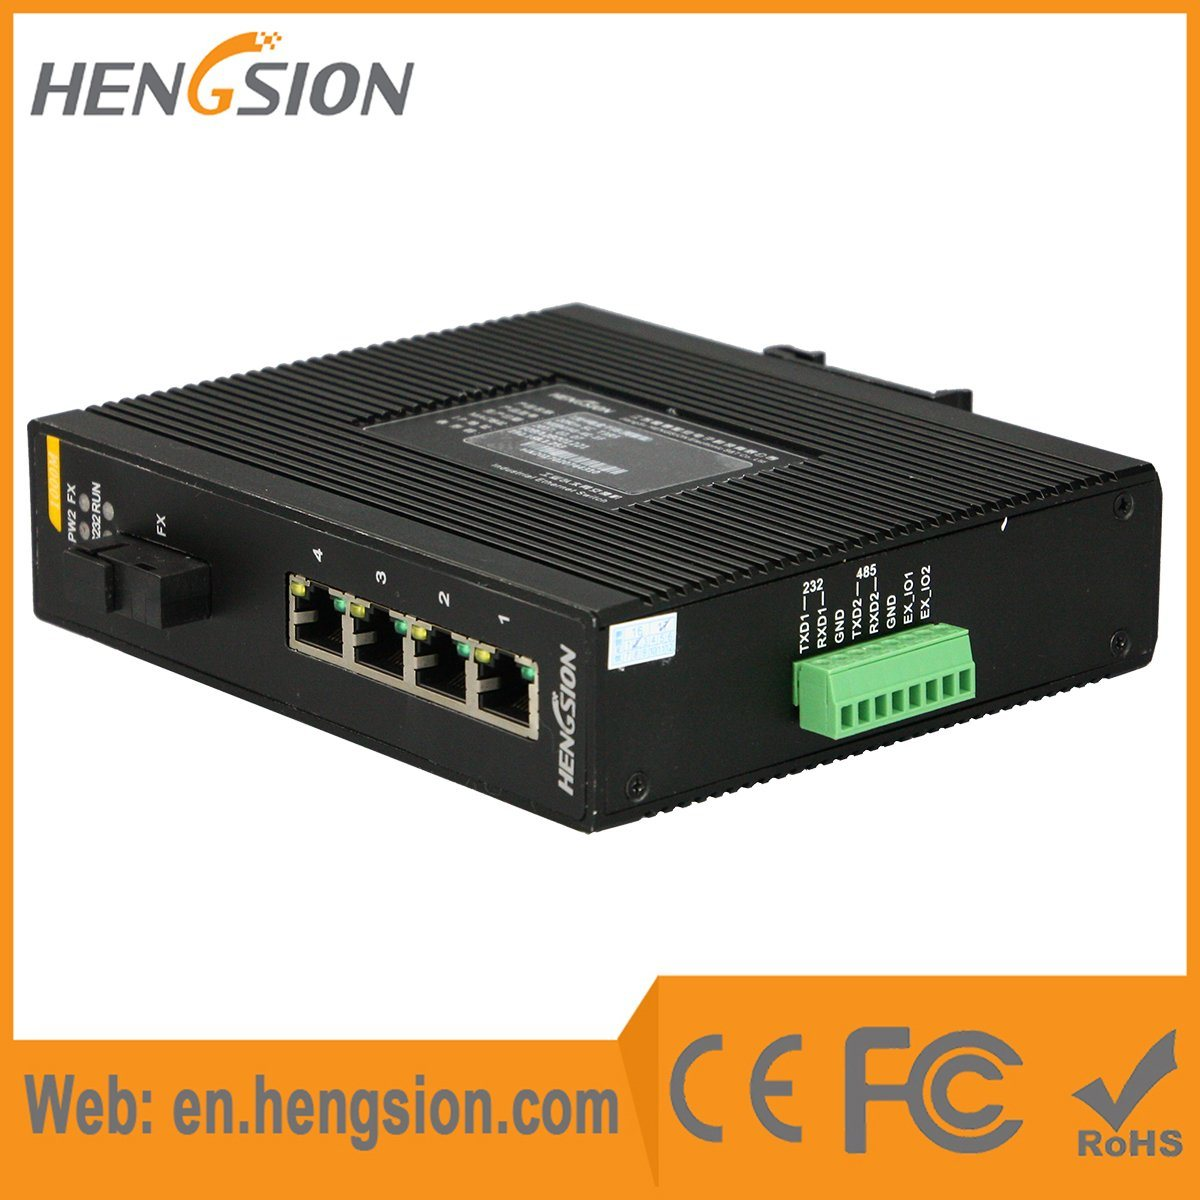 1 Fiber & 4 Port Rugged Industrial Ethernet Network Switch